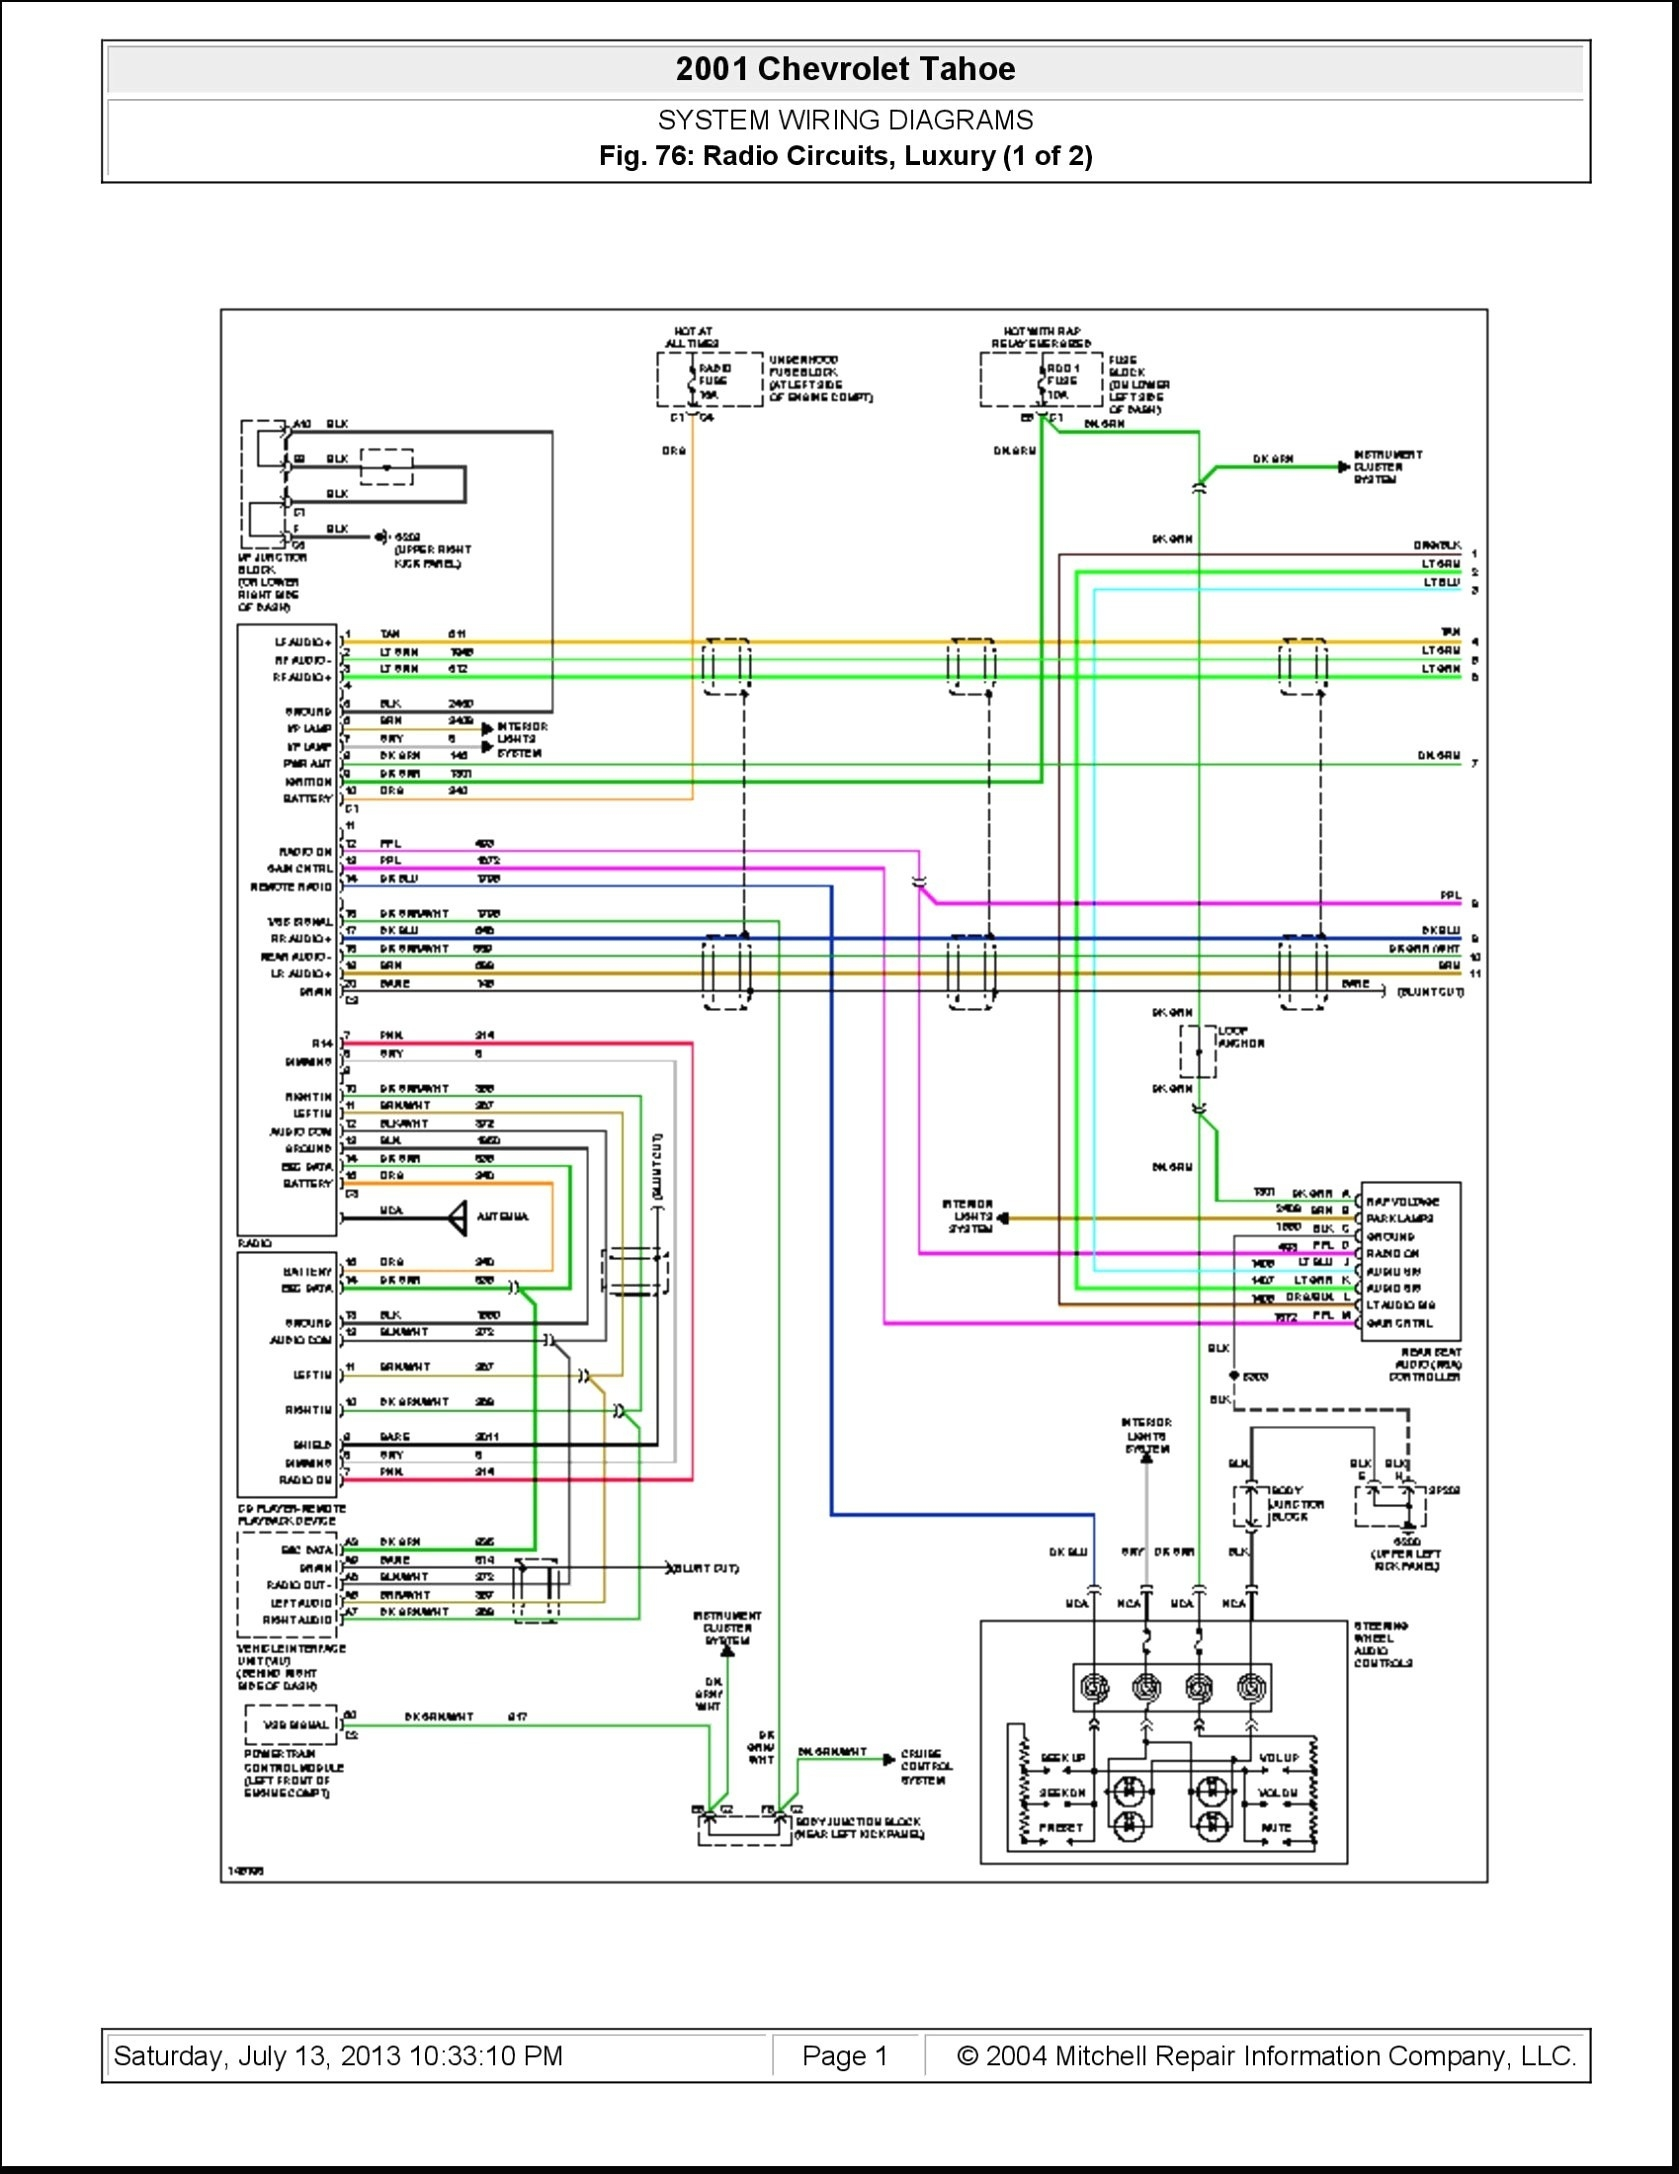 2004 chevy malibu radio wiring diagram Download-2004 Chevy Malibu Radio Wiring Diagram 2004 Chevy Impala Radio Wiring Diagram originalstylophone 14-l